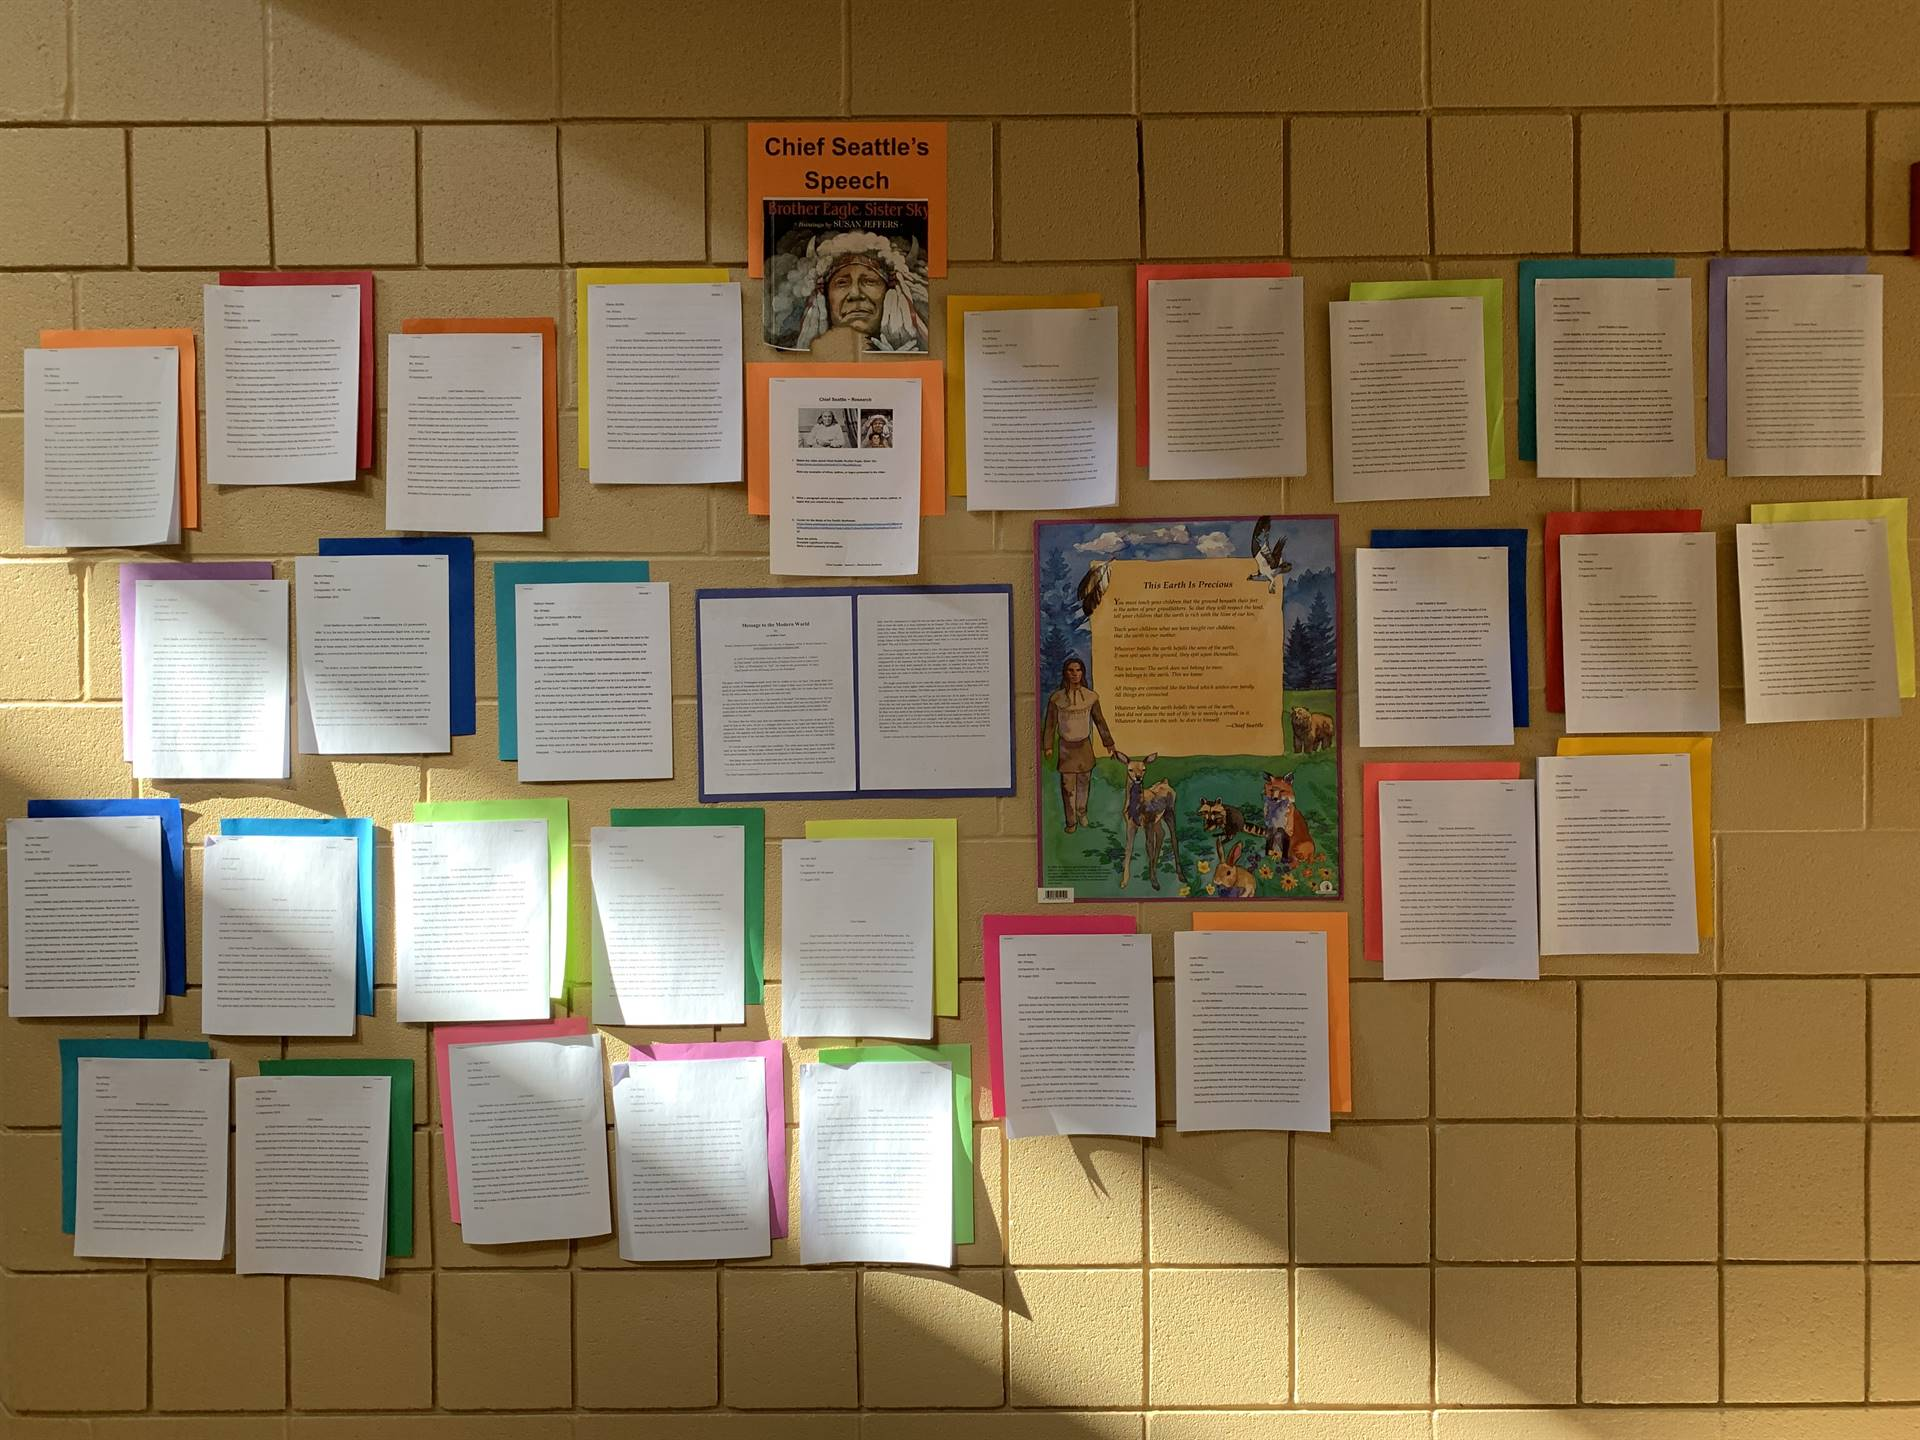 Student Papers on Wall